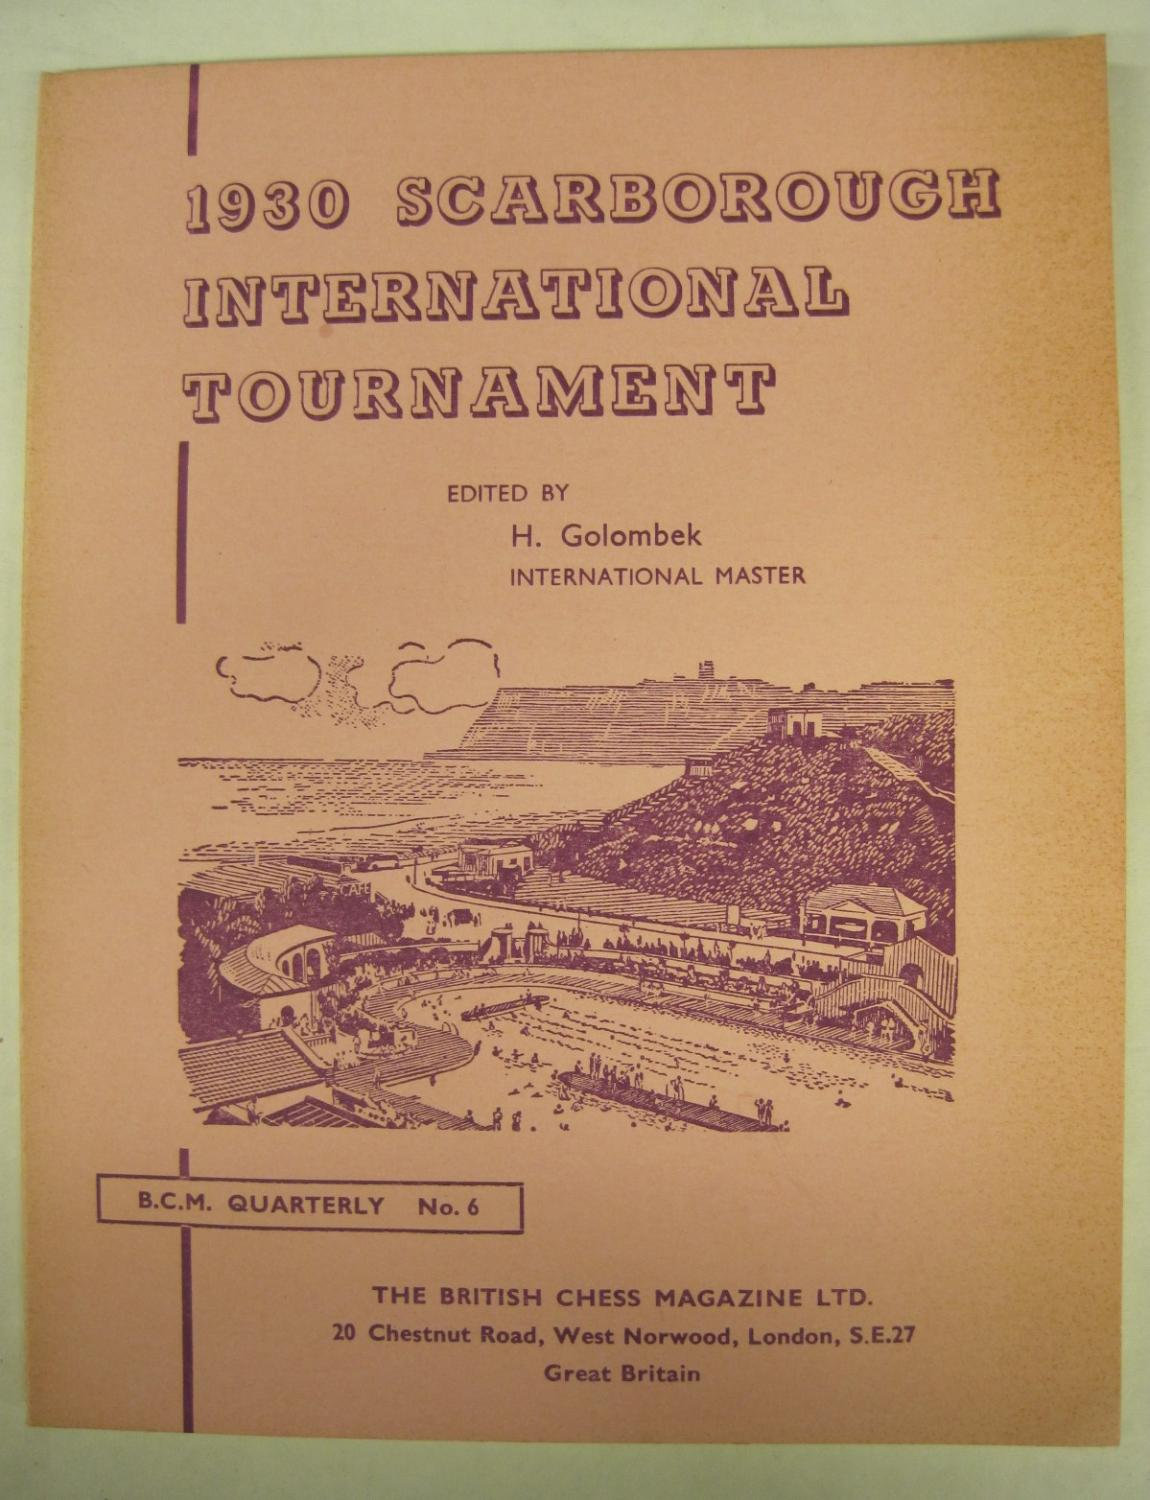 B.C.M. Quarterly, number 6: 1930 Scarborough International Tournament, Golombek, Harold, 1962.